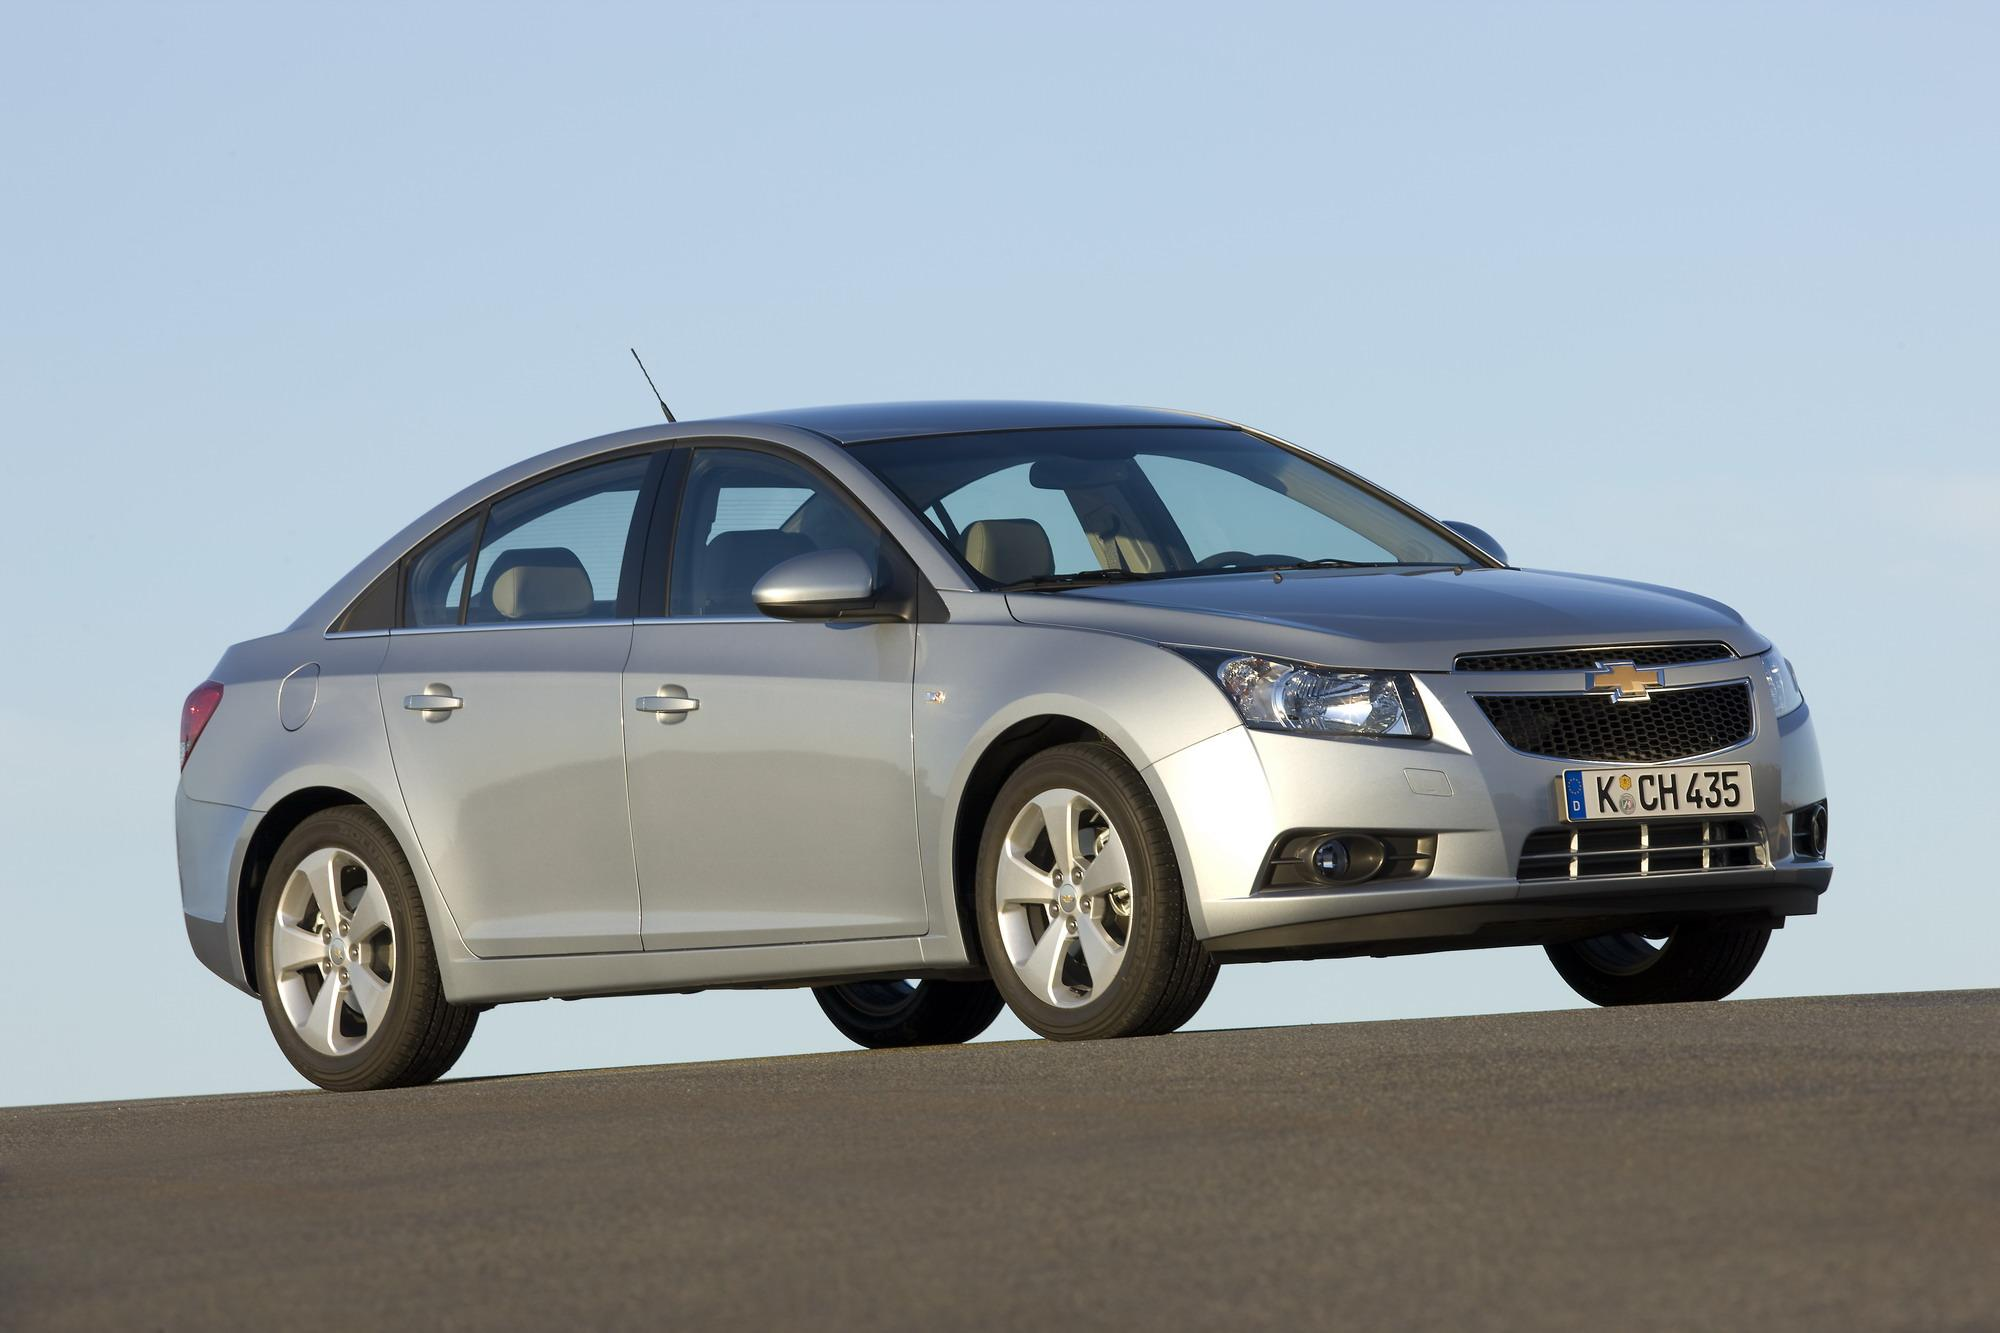 hight resolution of 2010 chevrolet cruze top speed